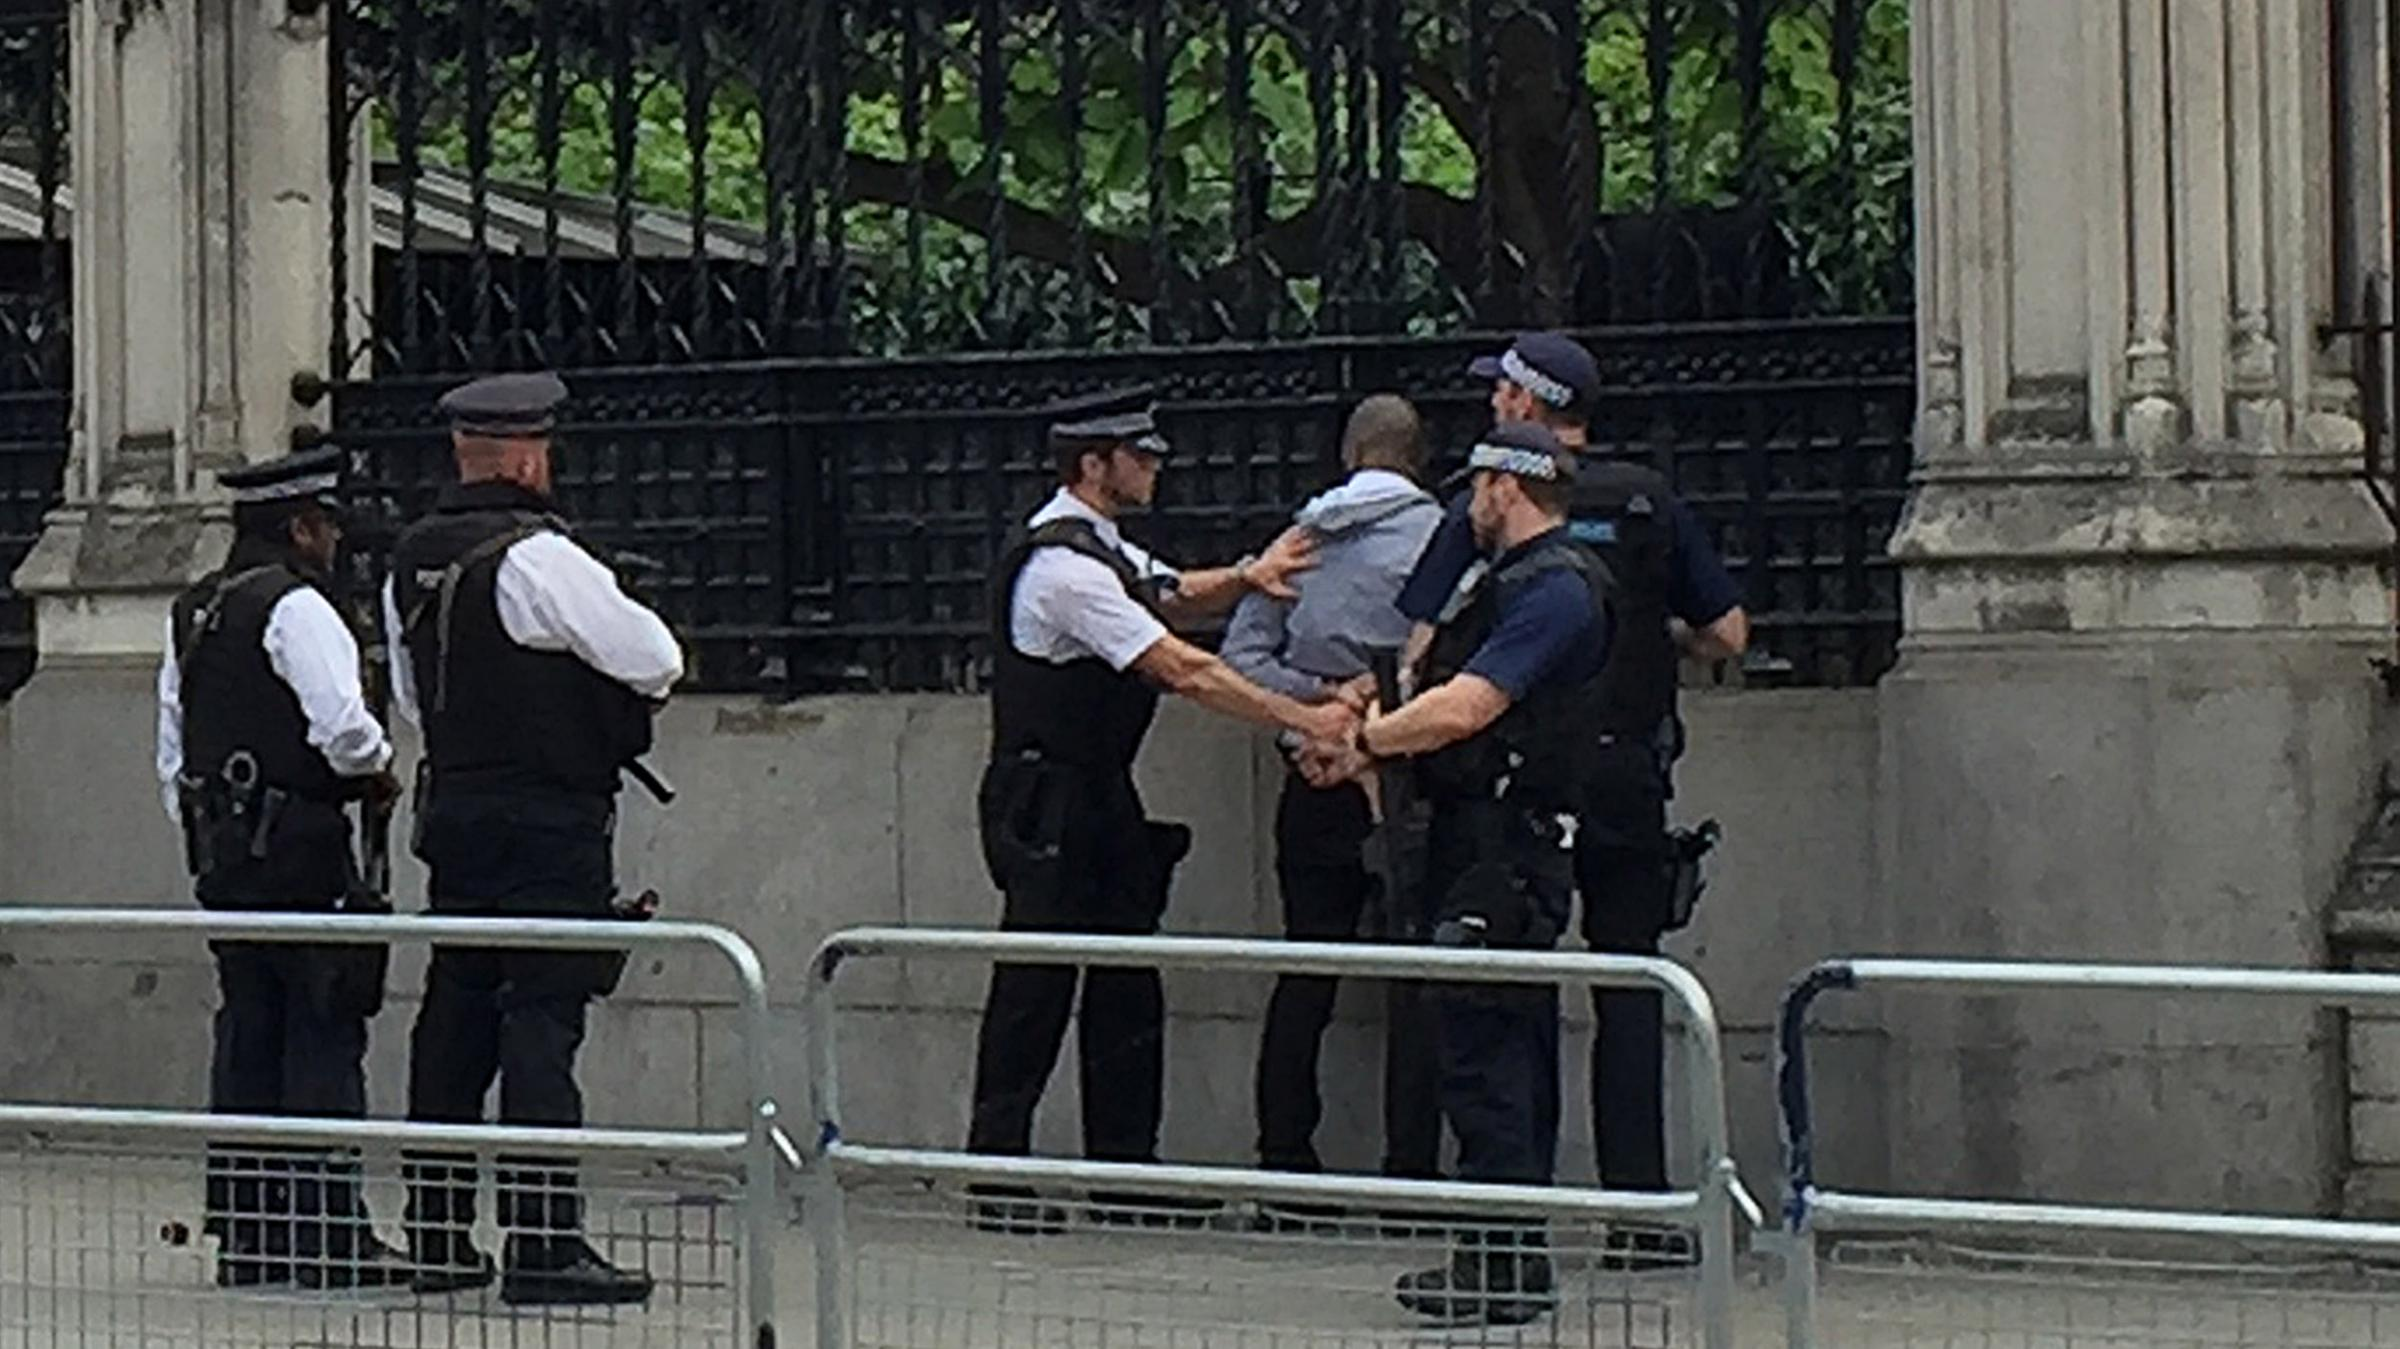 Man 'reaching for knife' arrested outside UK Parliament